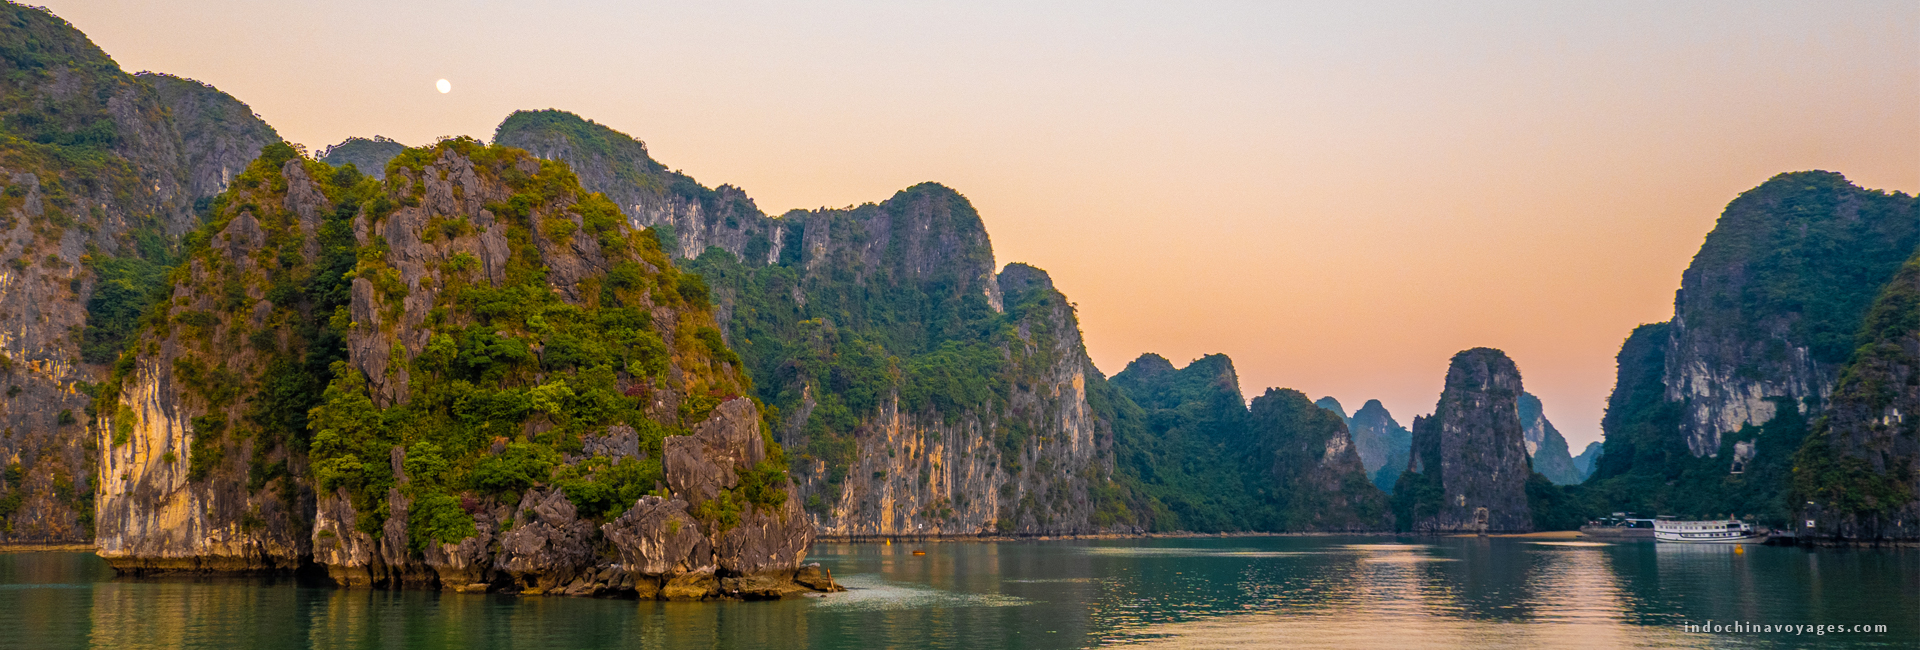 Halong Bay – the beauty that you cannot describe in words